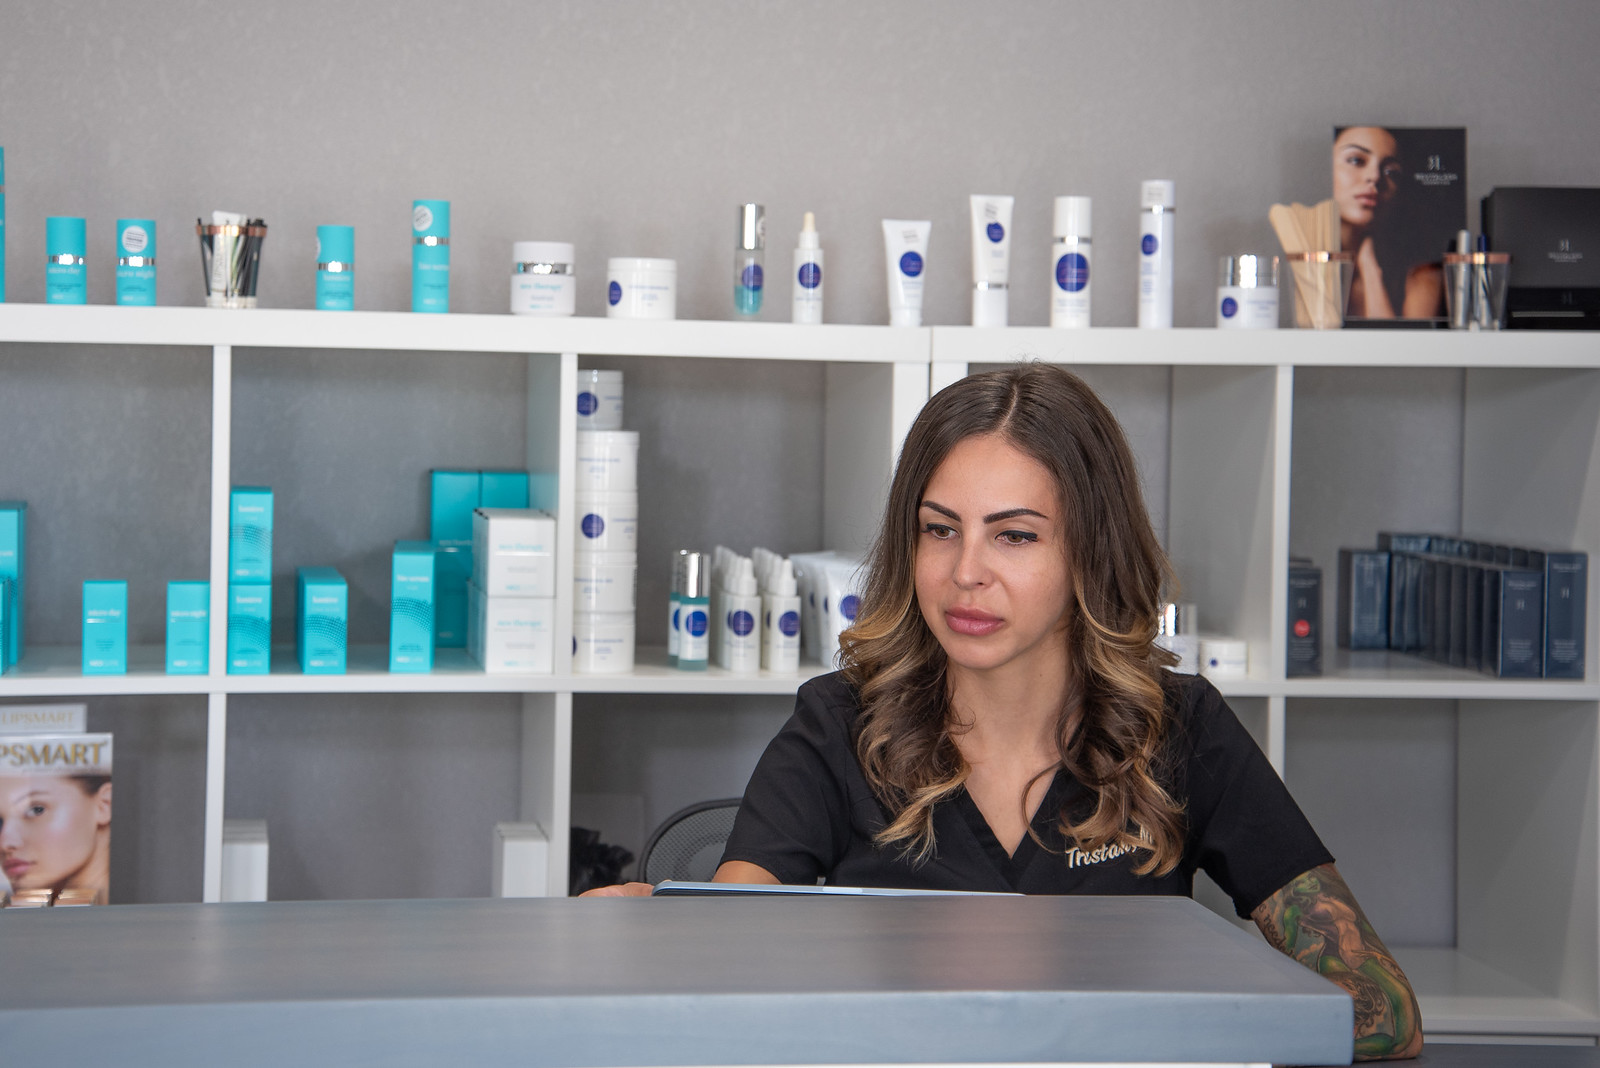 Tristah Romero-Kelly Owner of Renew Medical Aesthetics, she is sitting at her front desk in front of her products